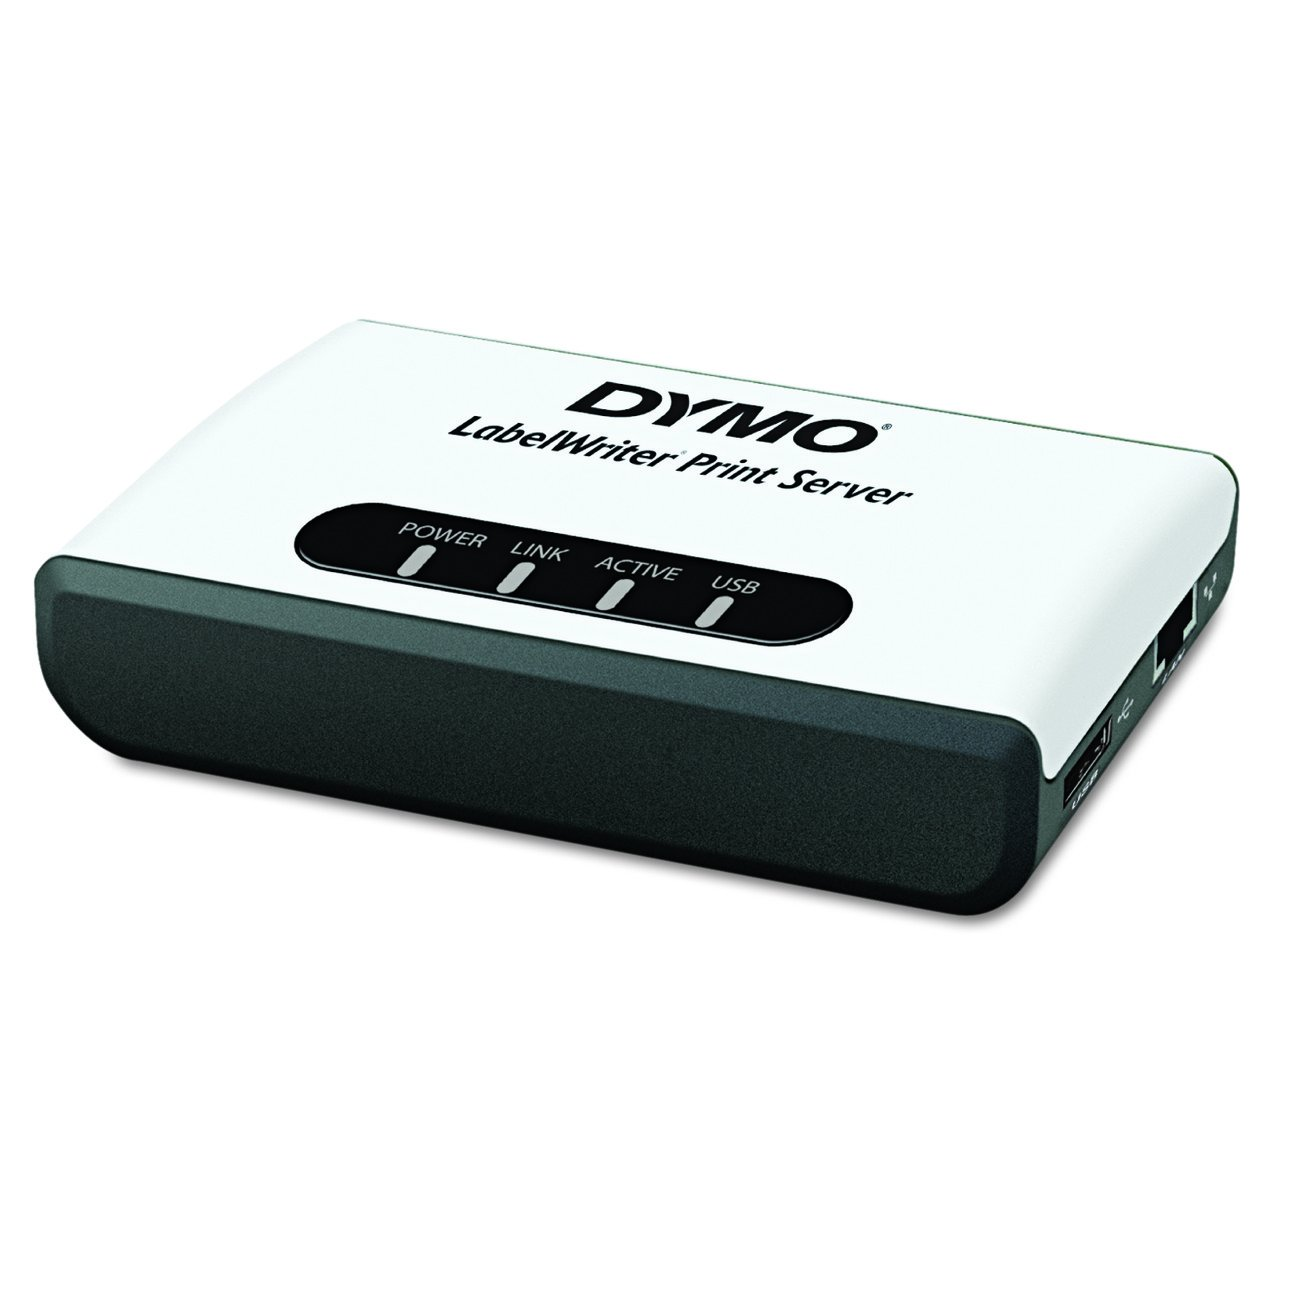 DYMO LabelWriter Print Server by DYMO